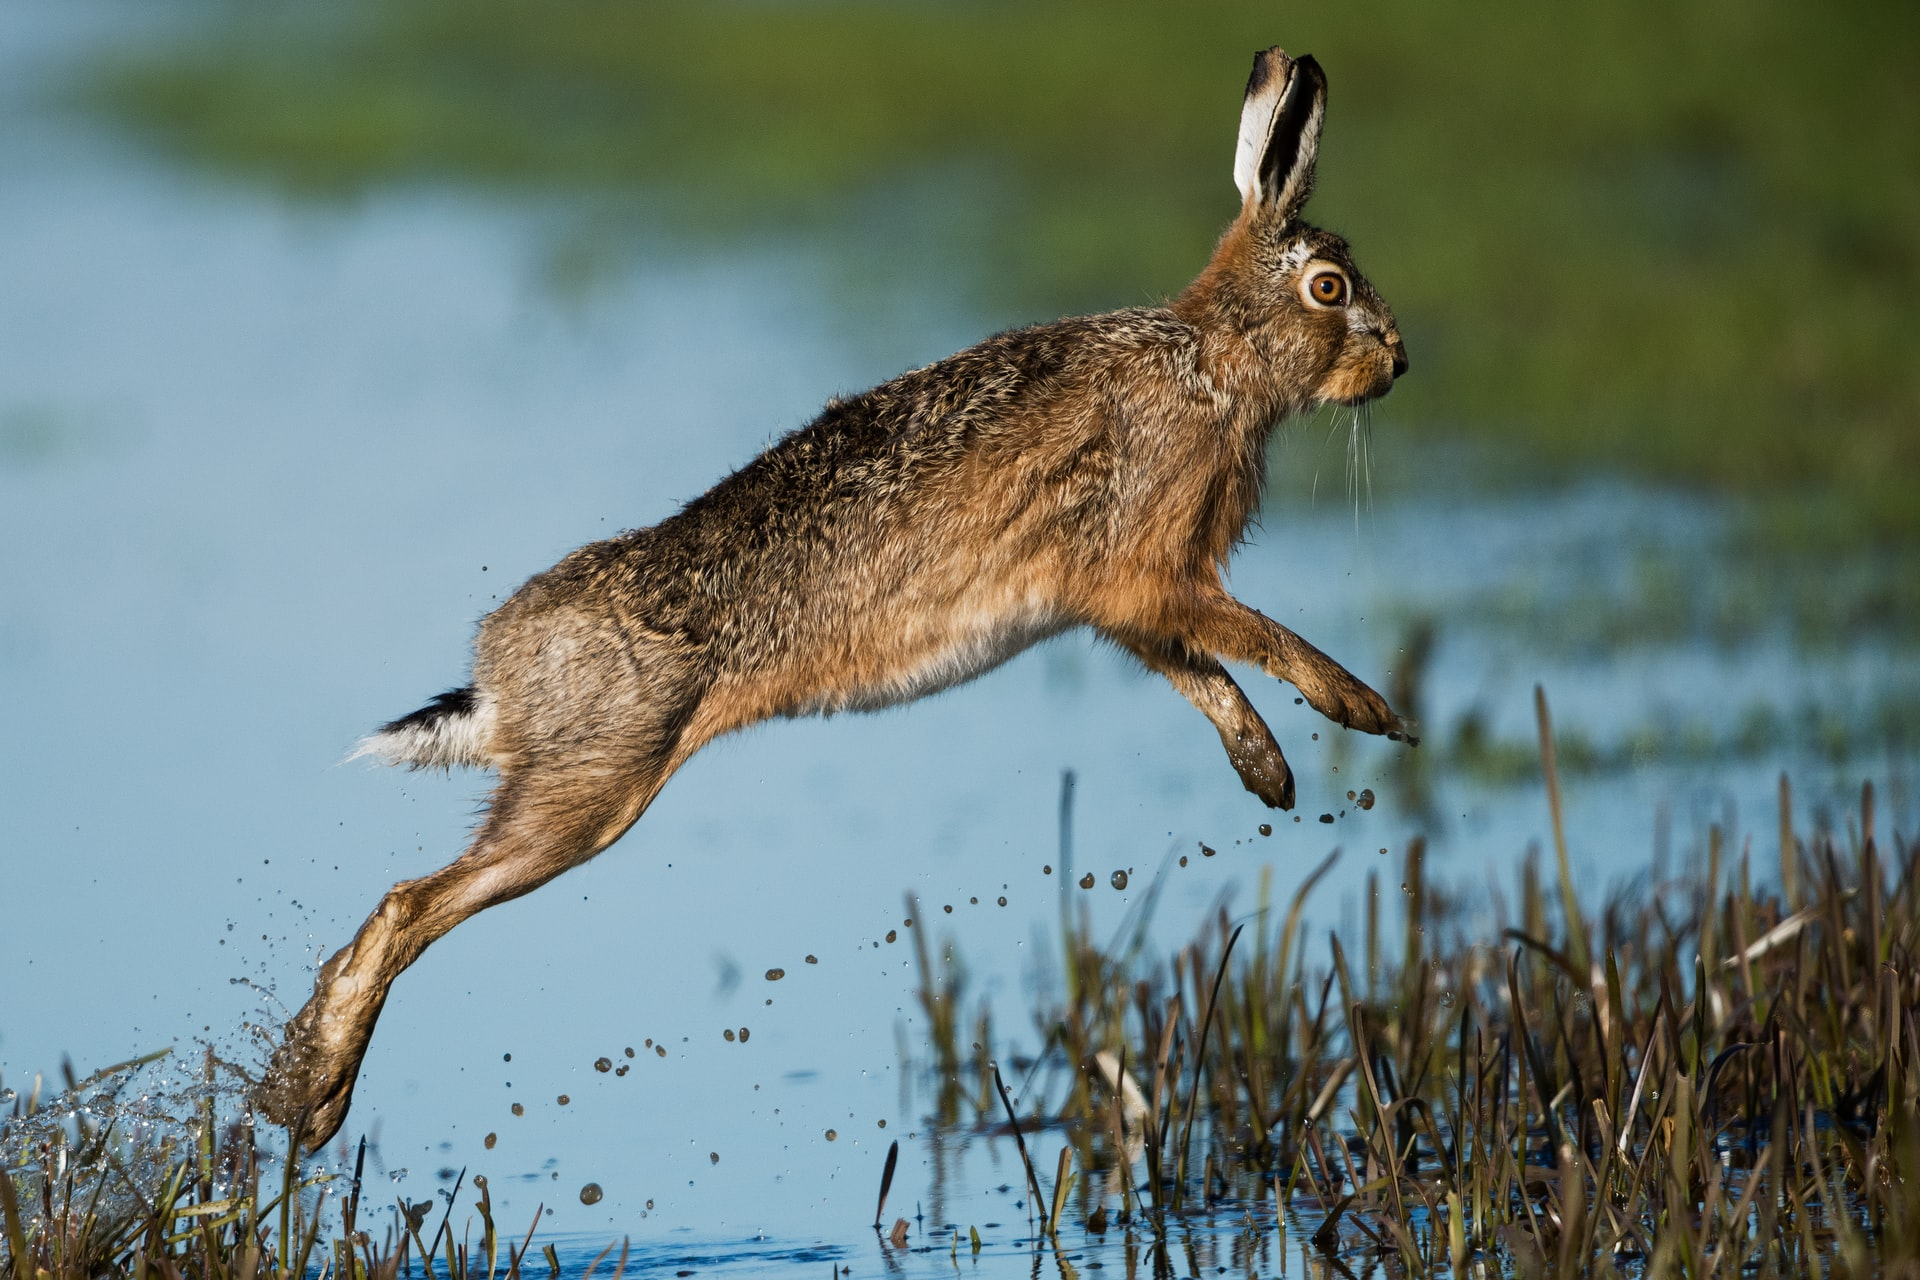 A leaping hare